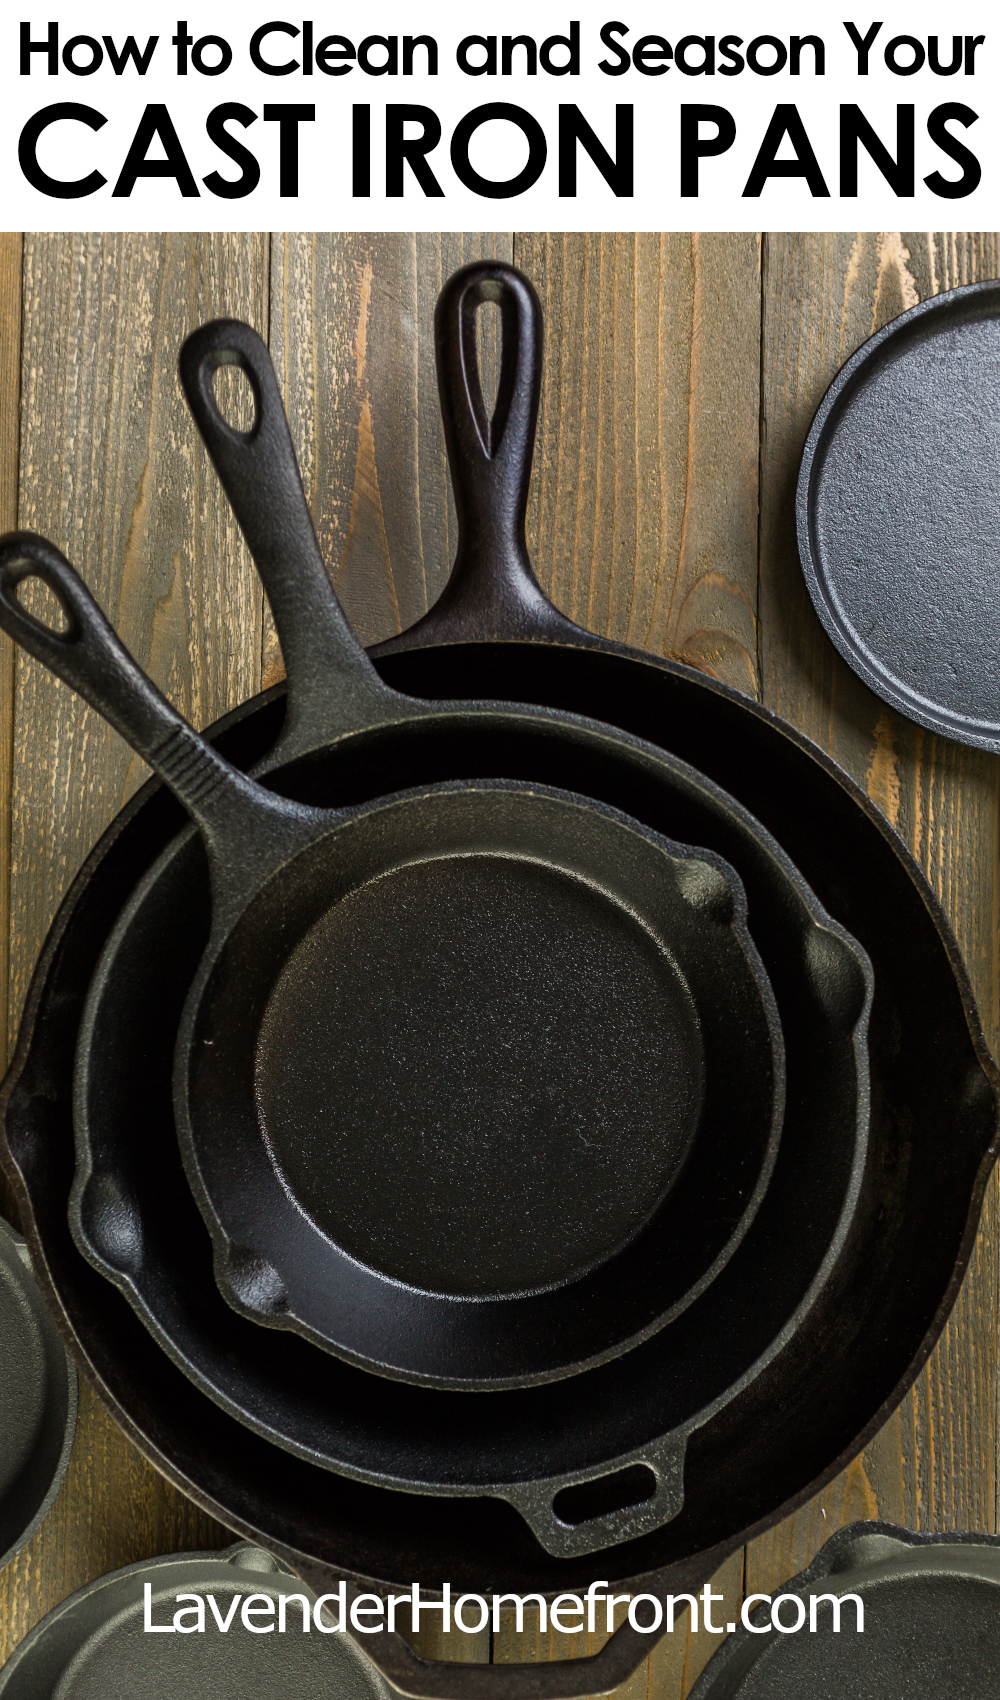 how to clean and season your cast iron pans pinnable image with text overlay.